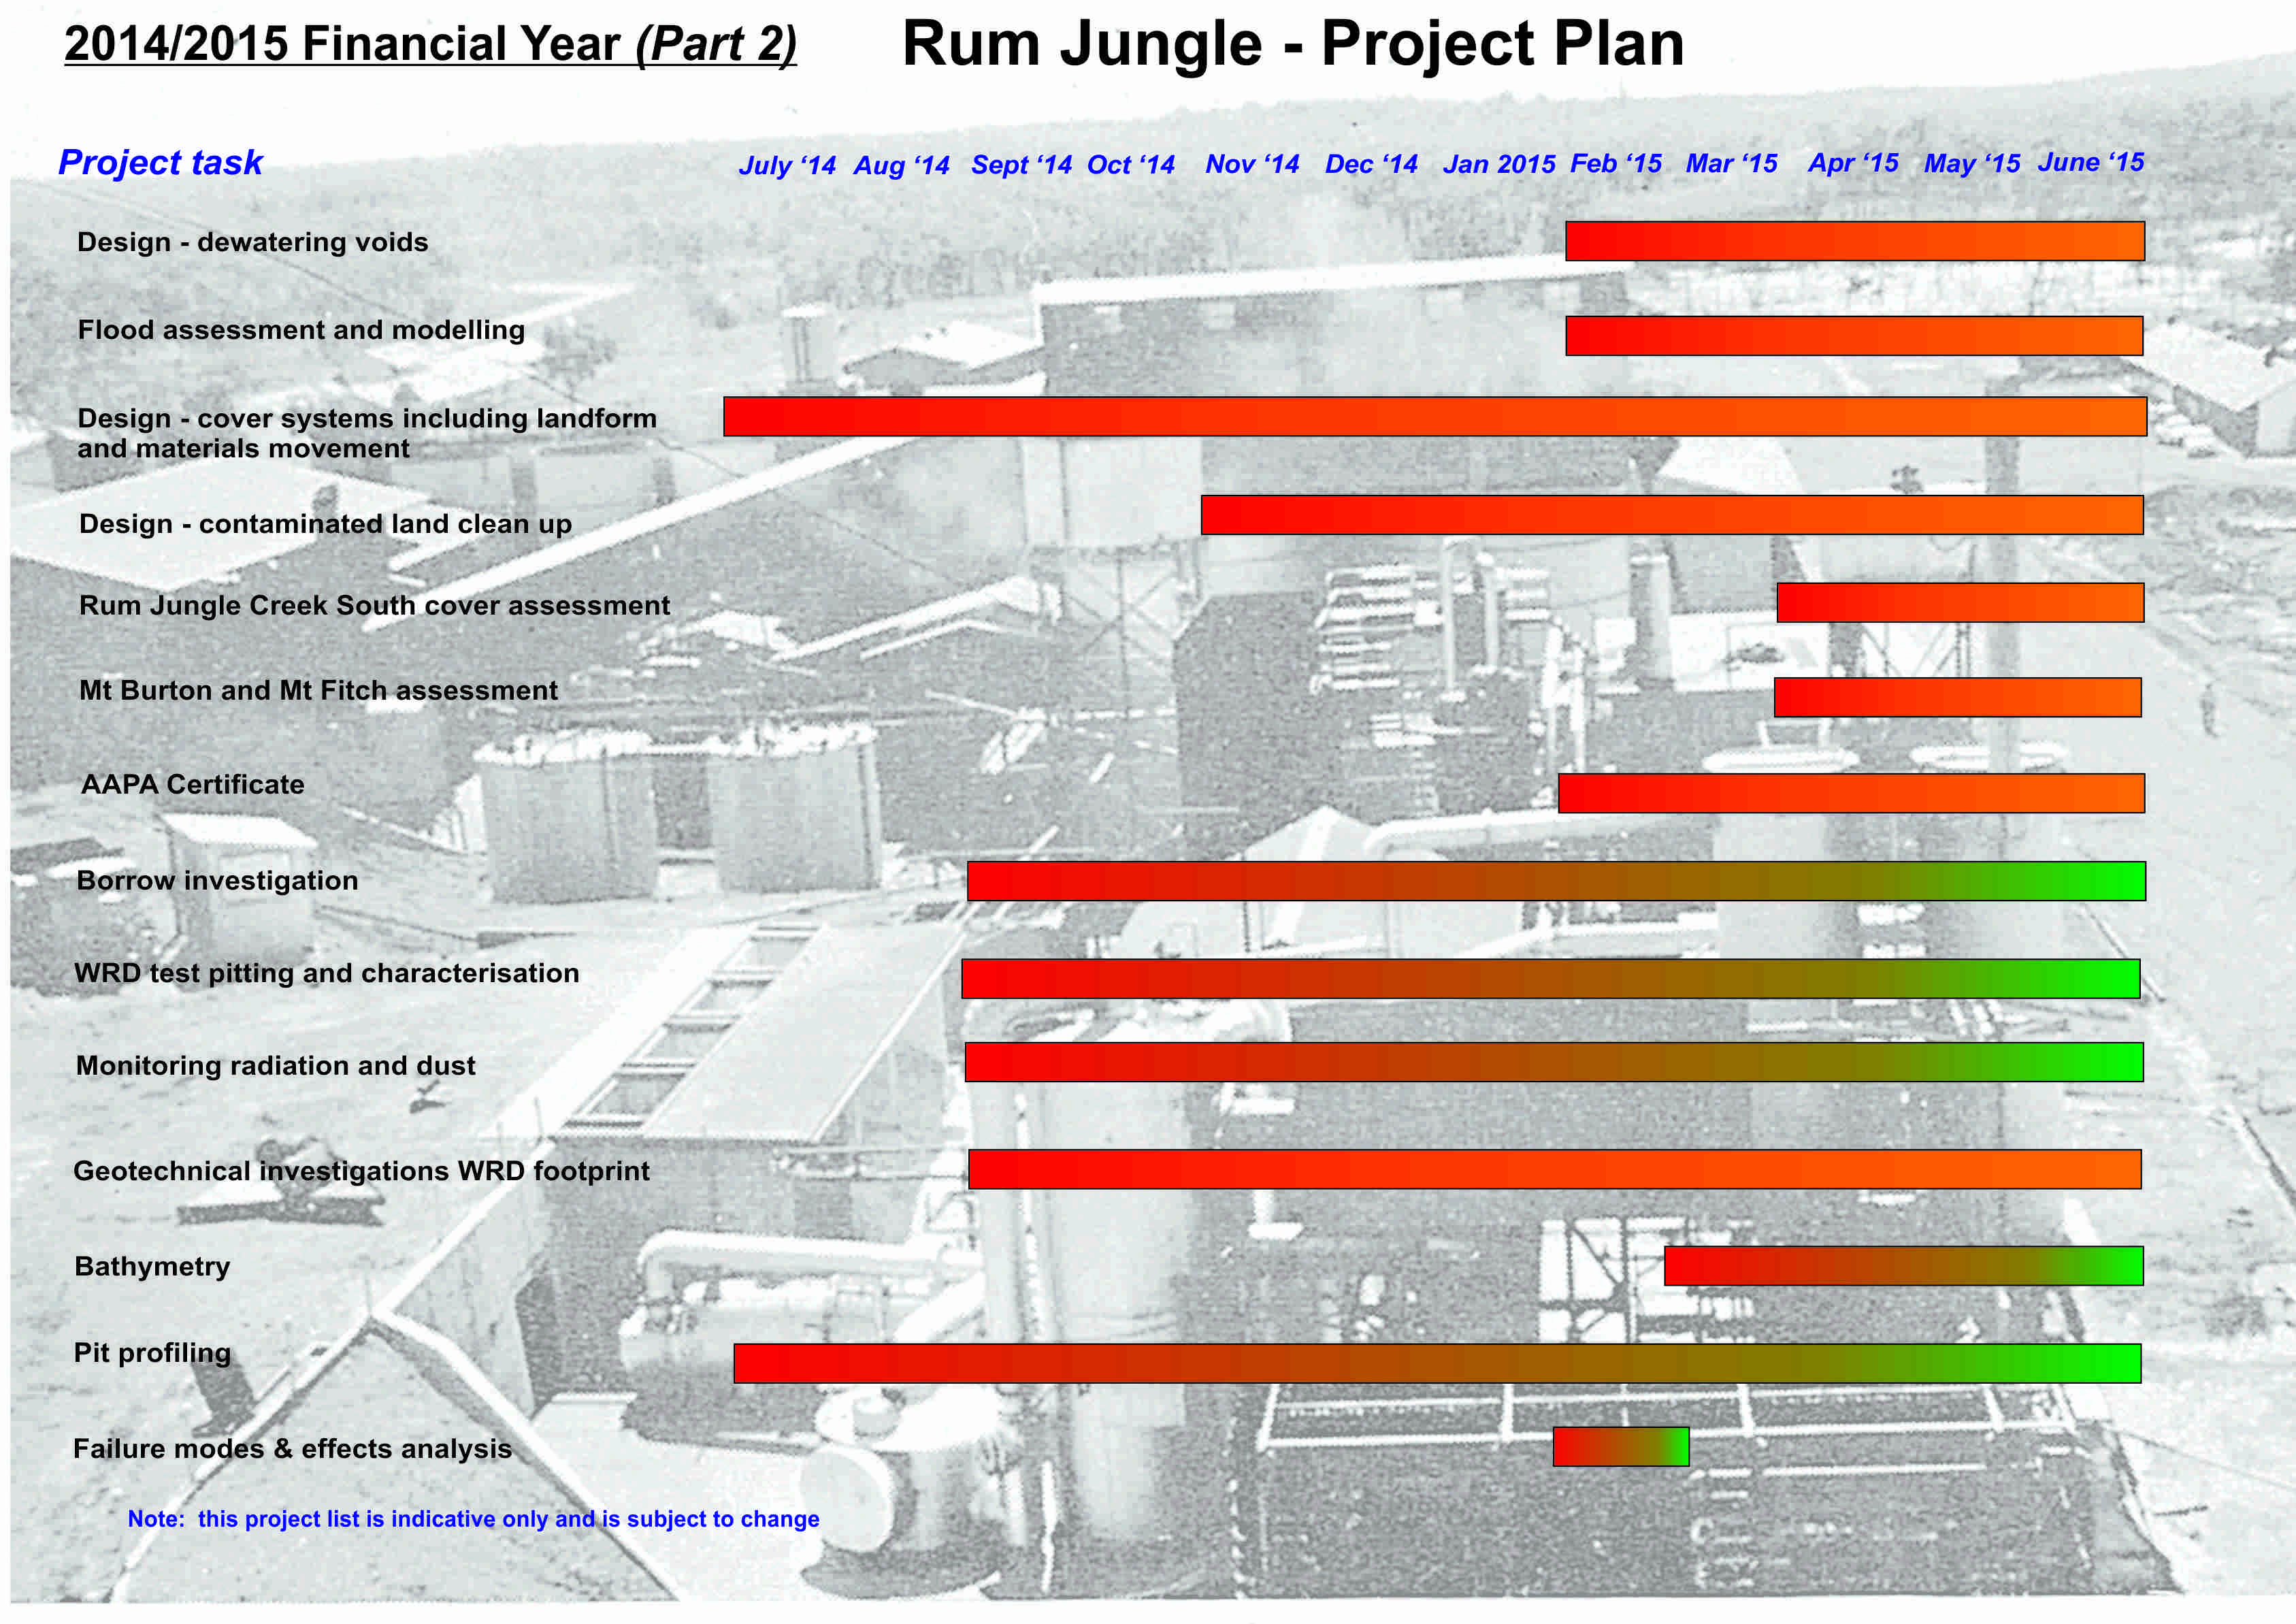 project plan 14-15 (part 2)